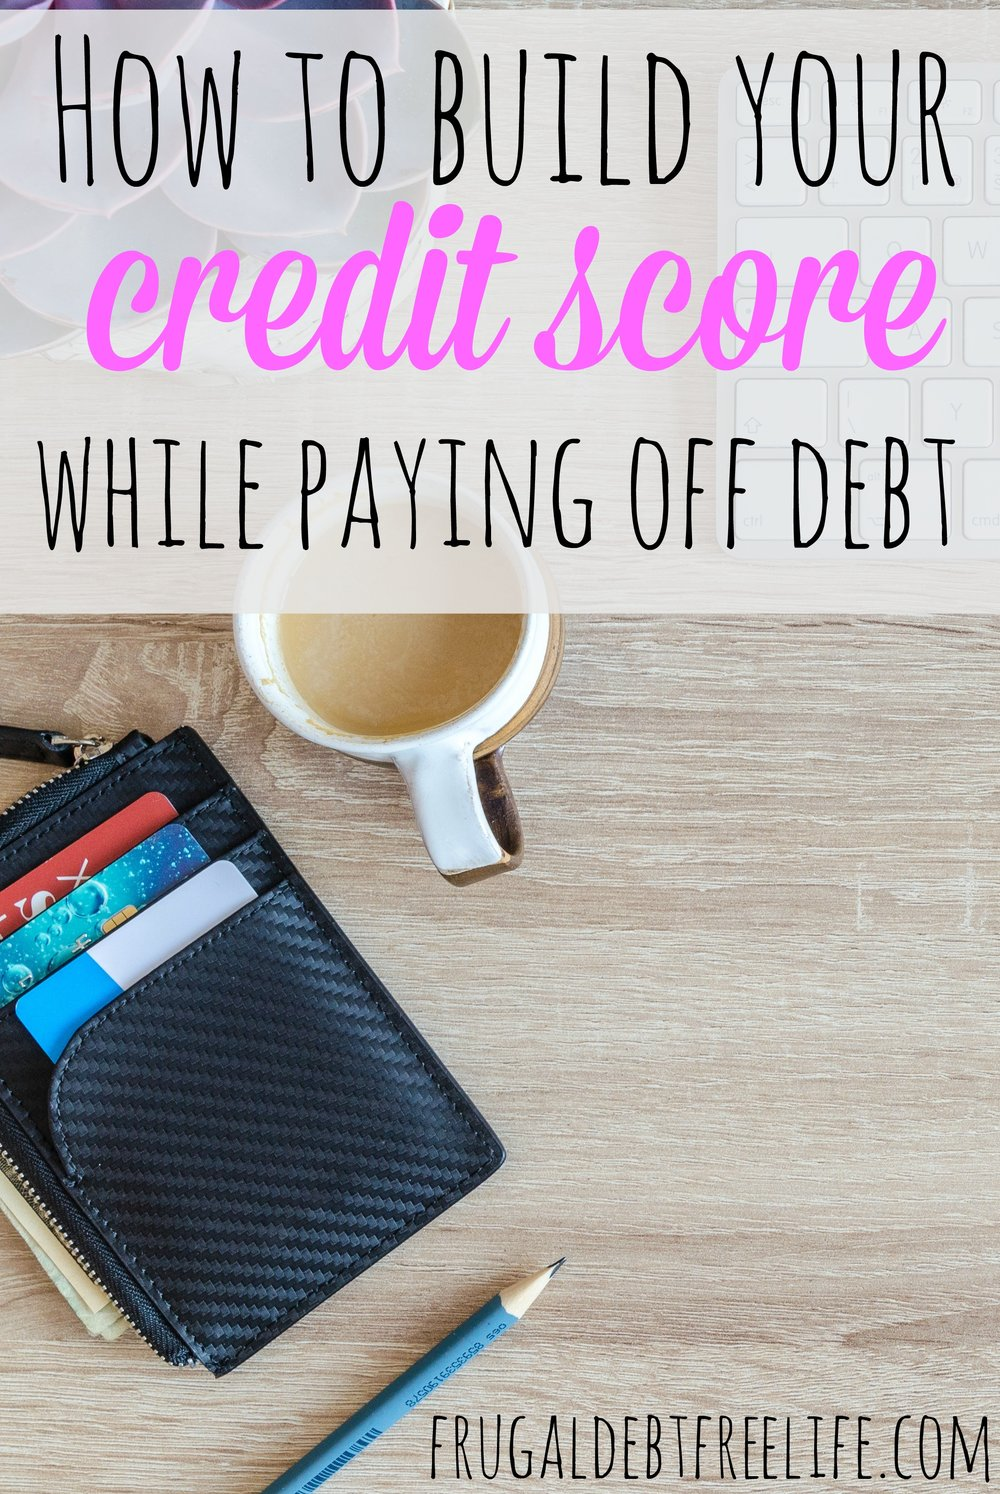 how to build your credit score while paying off debt how to build your credit score without a credit card .jpg